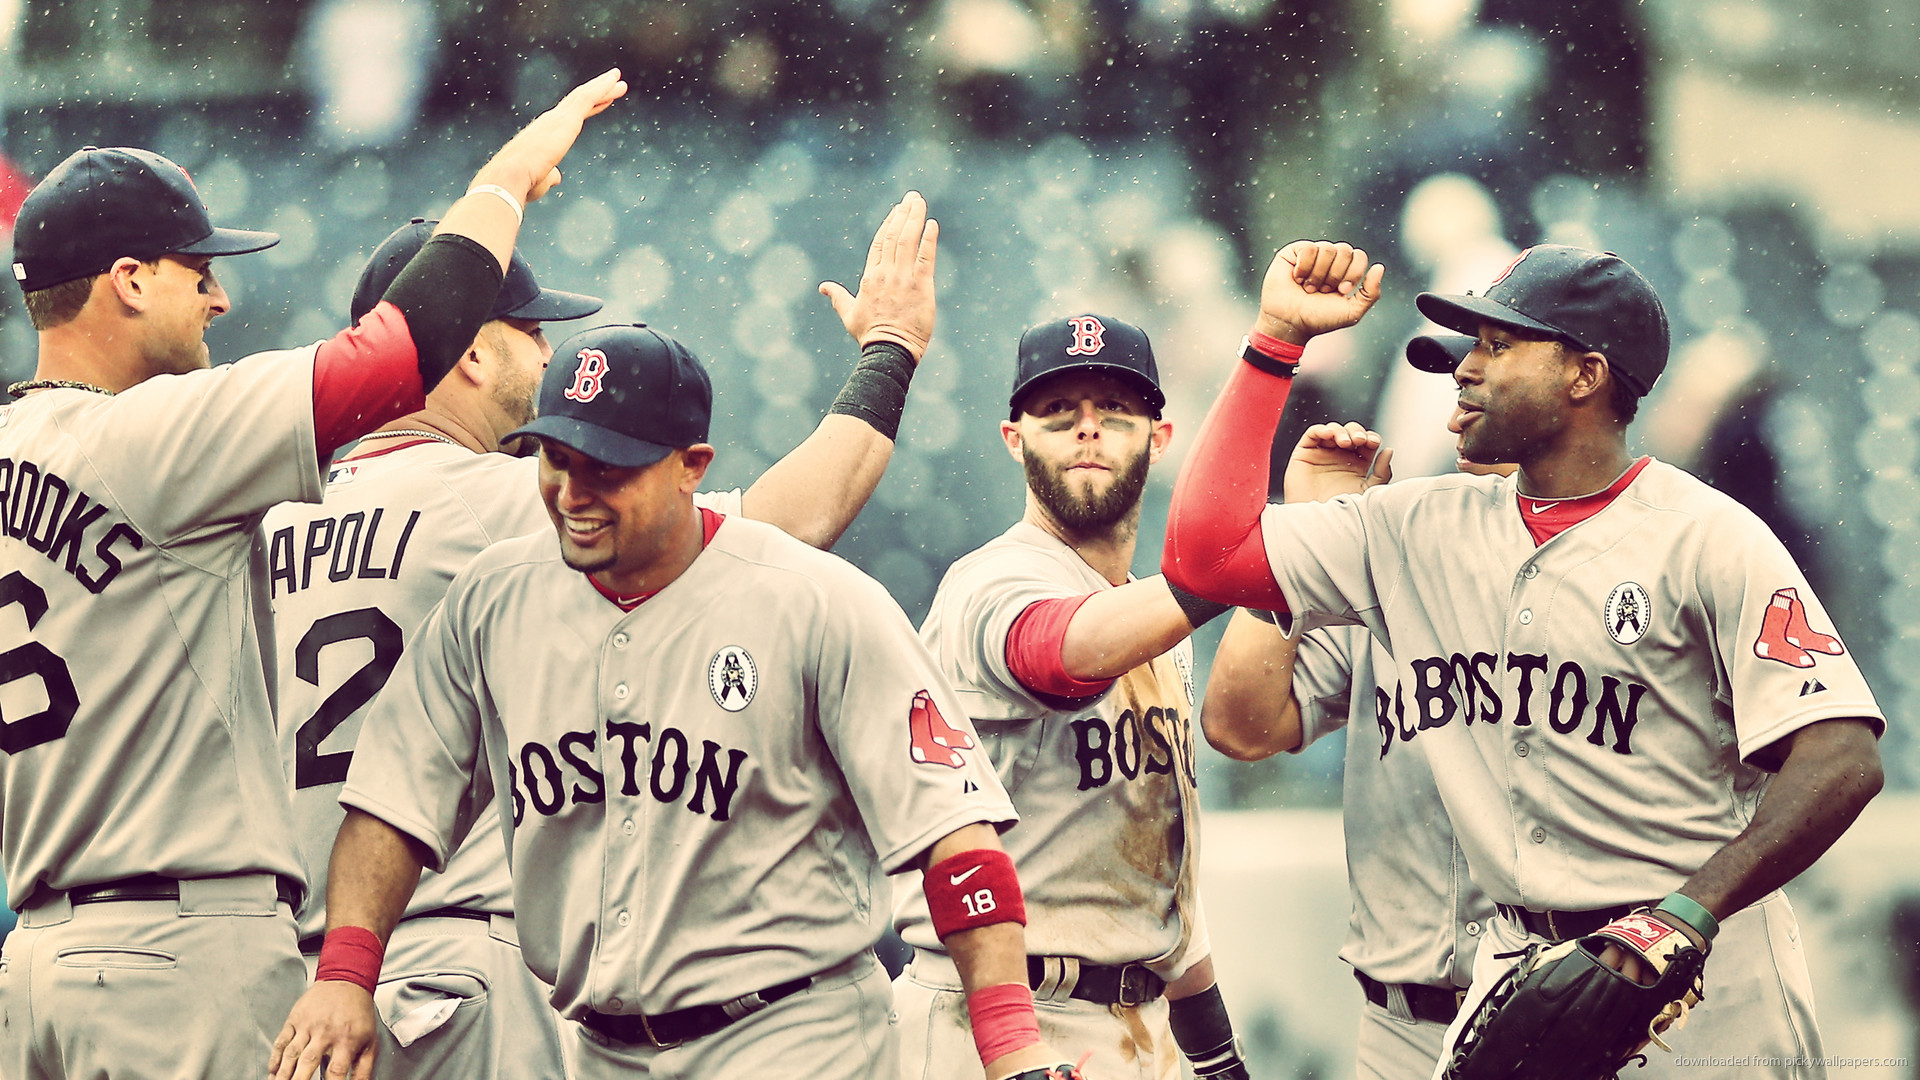 Red Sox Cheering in Rain picture